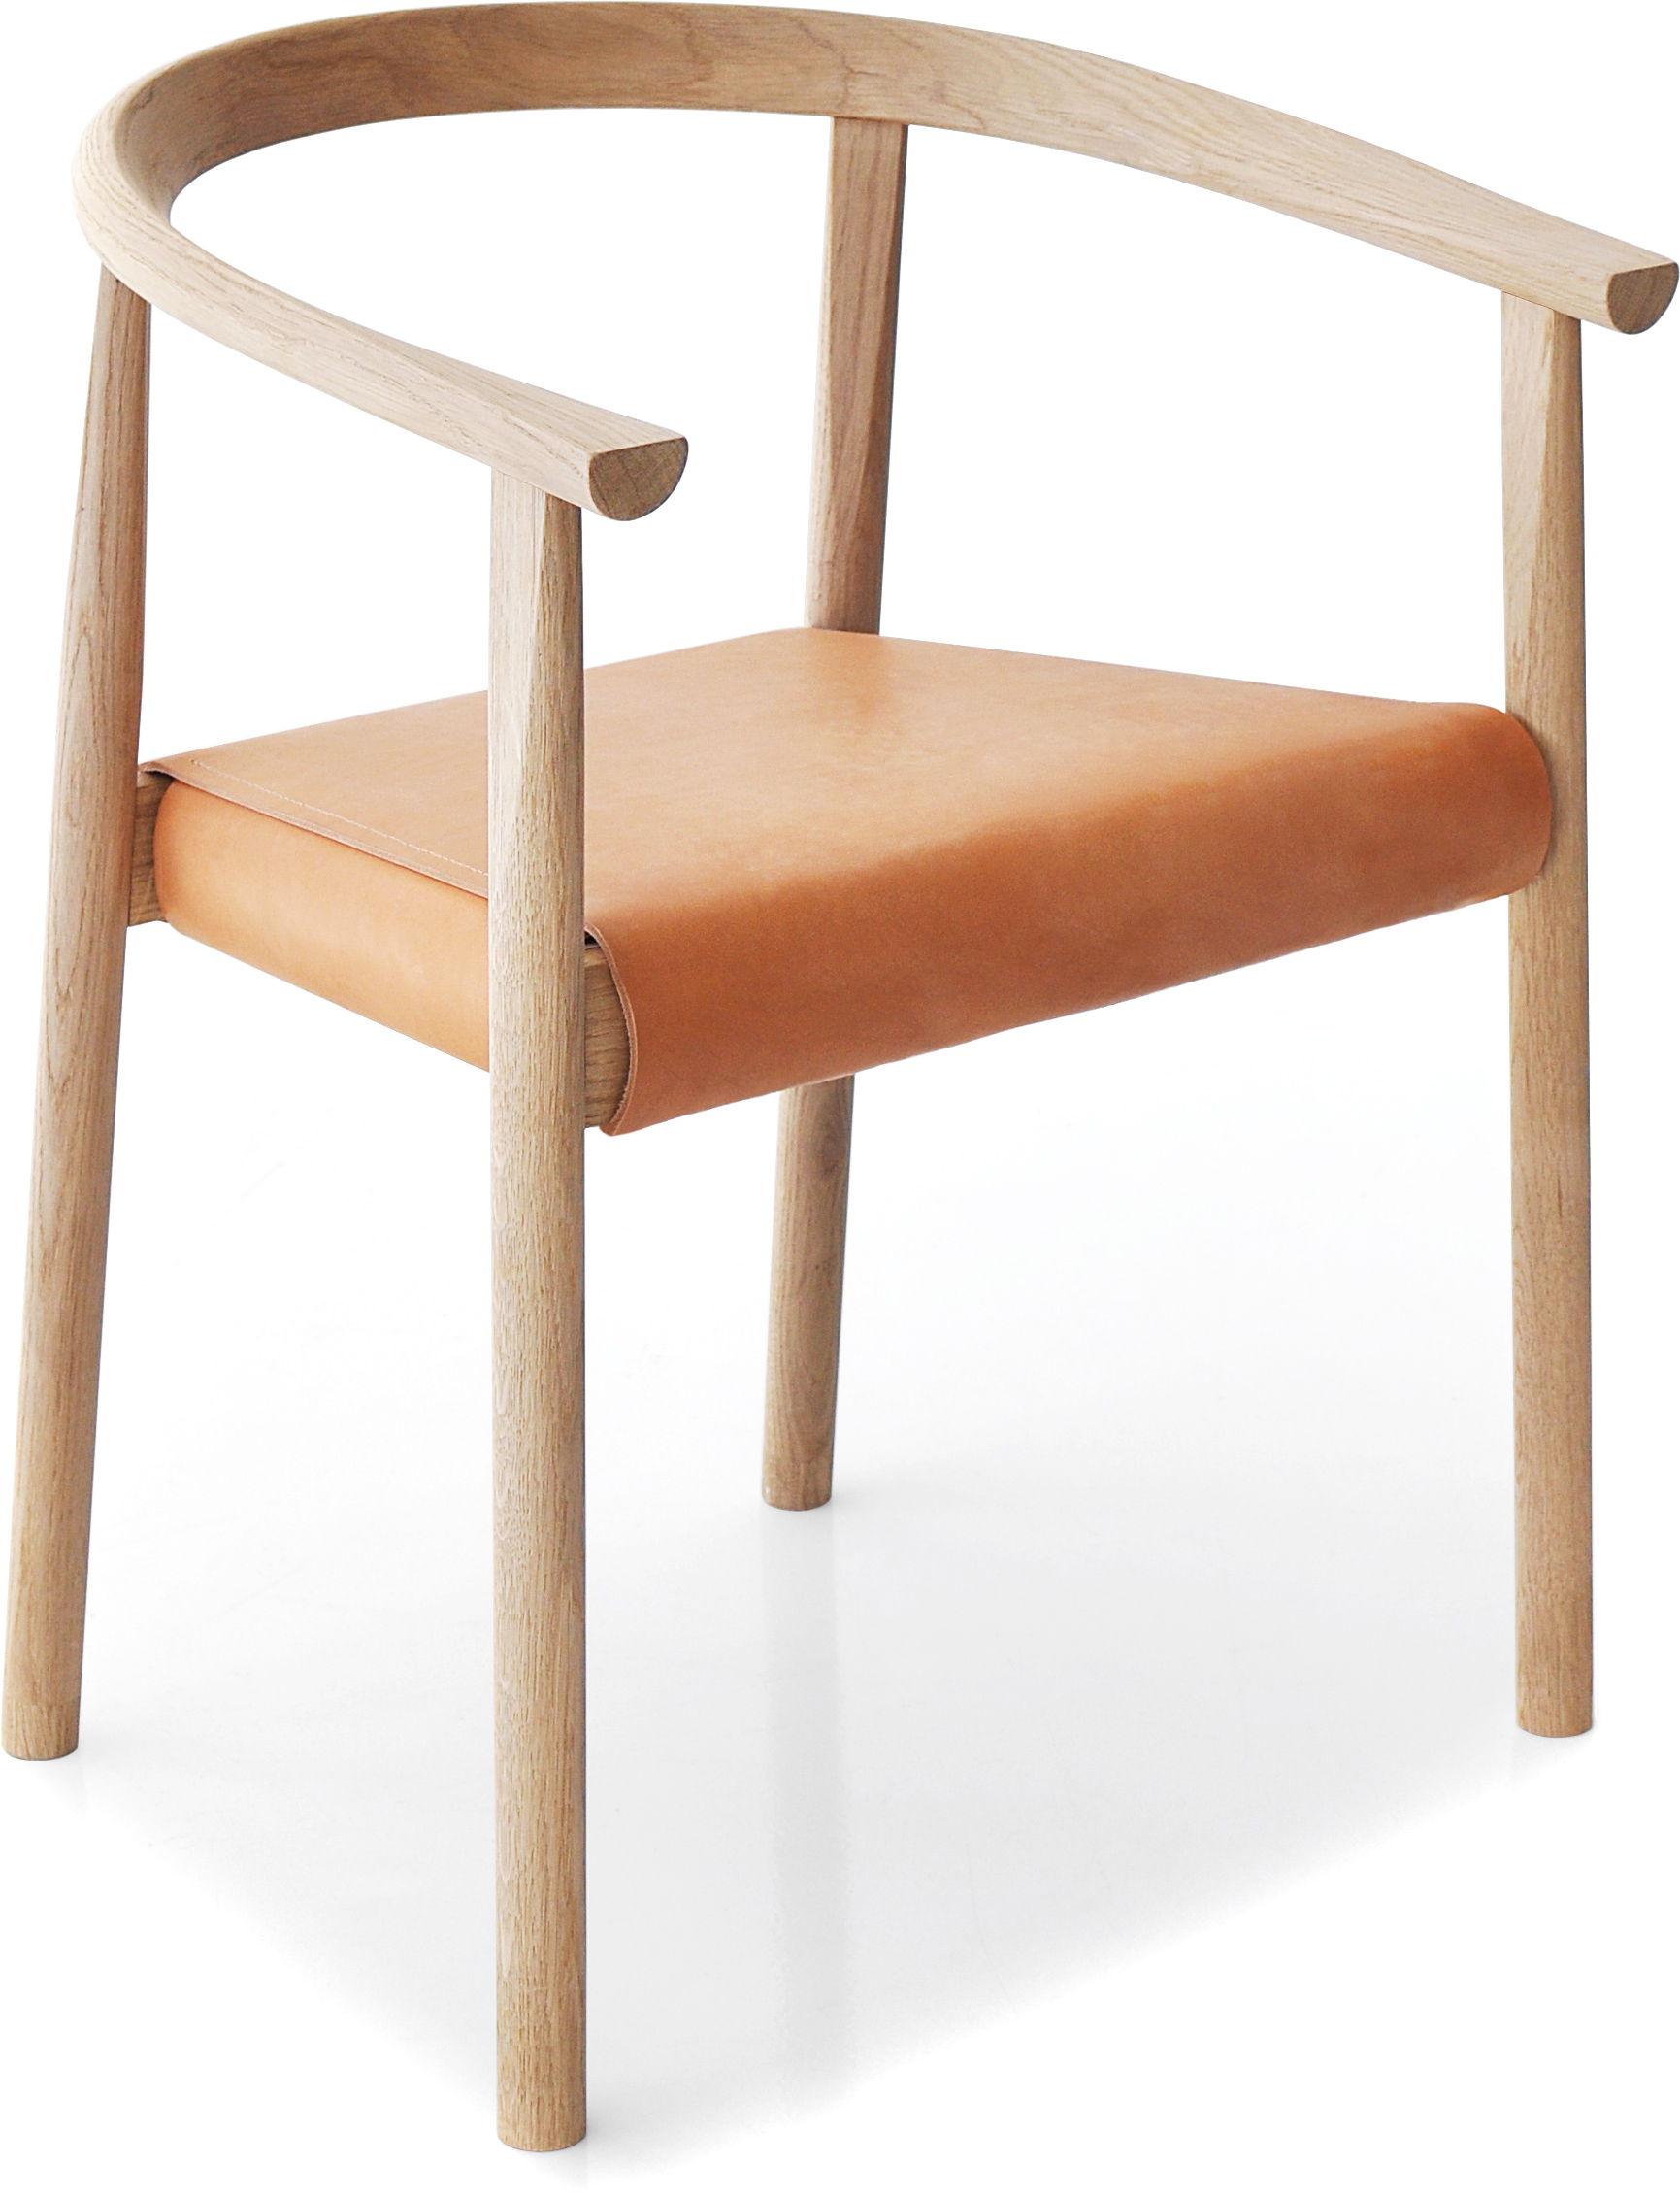 Tokyo chair for Modern hive